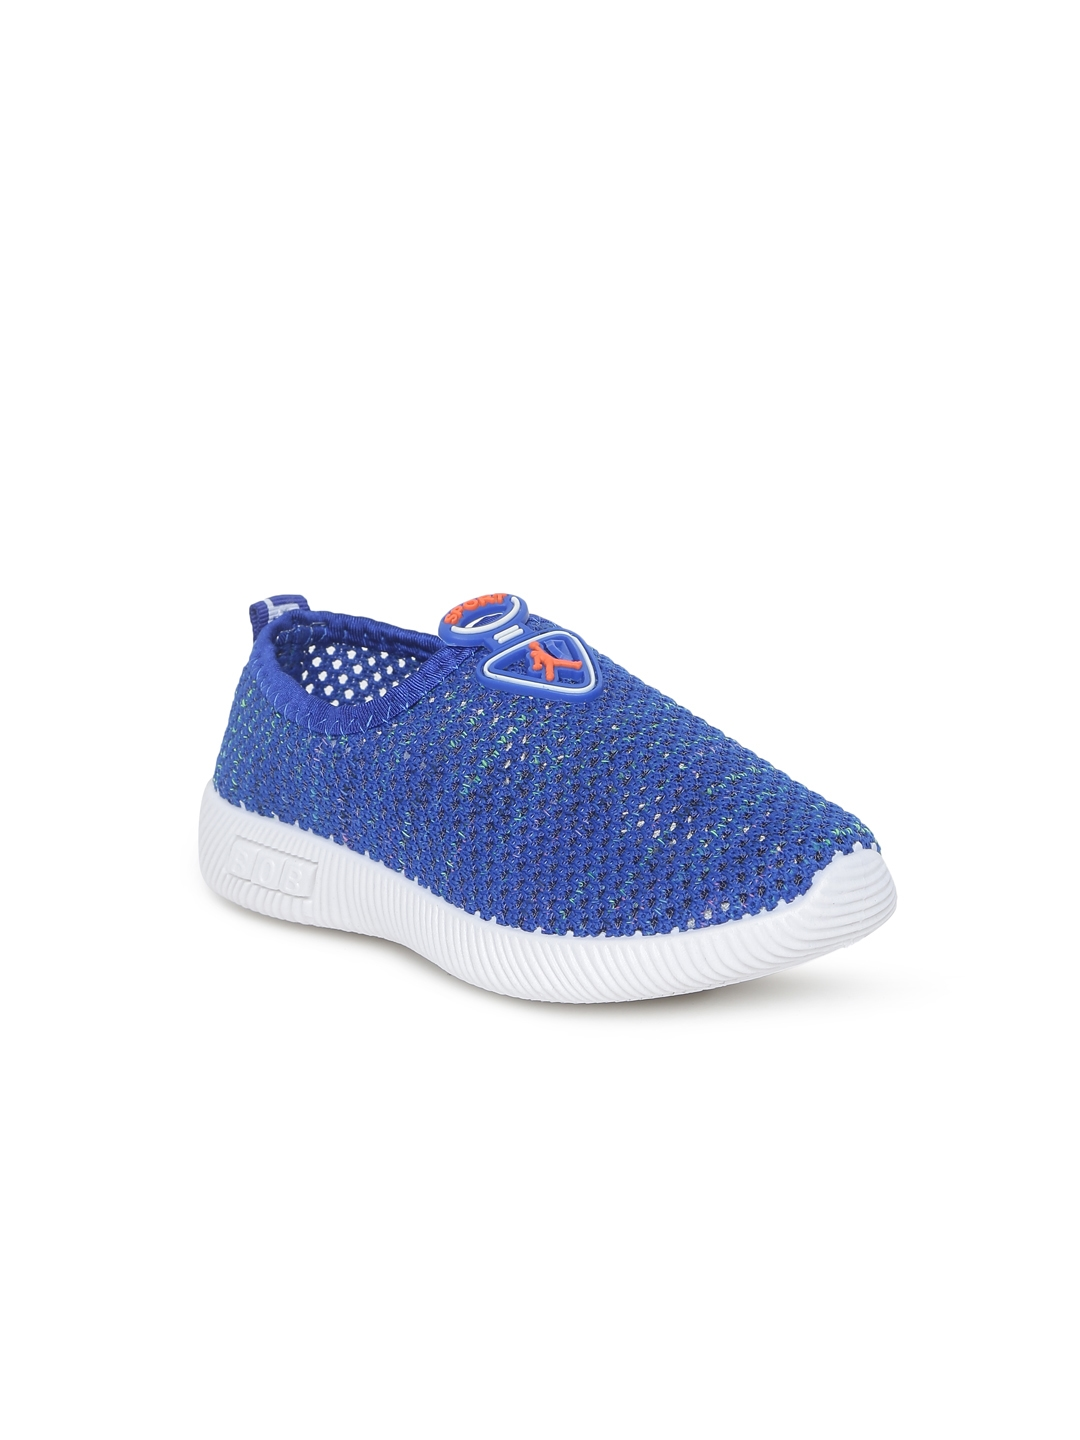 9b9a6f9229 Buy Kittens Boys Blue Slip On Sneakers - Casual Shoes for Boys ...